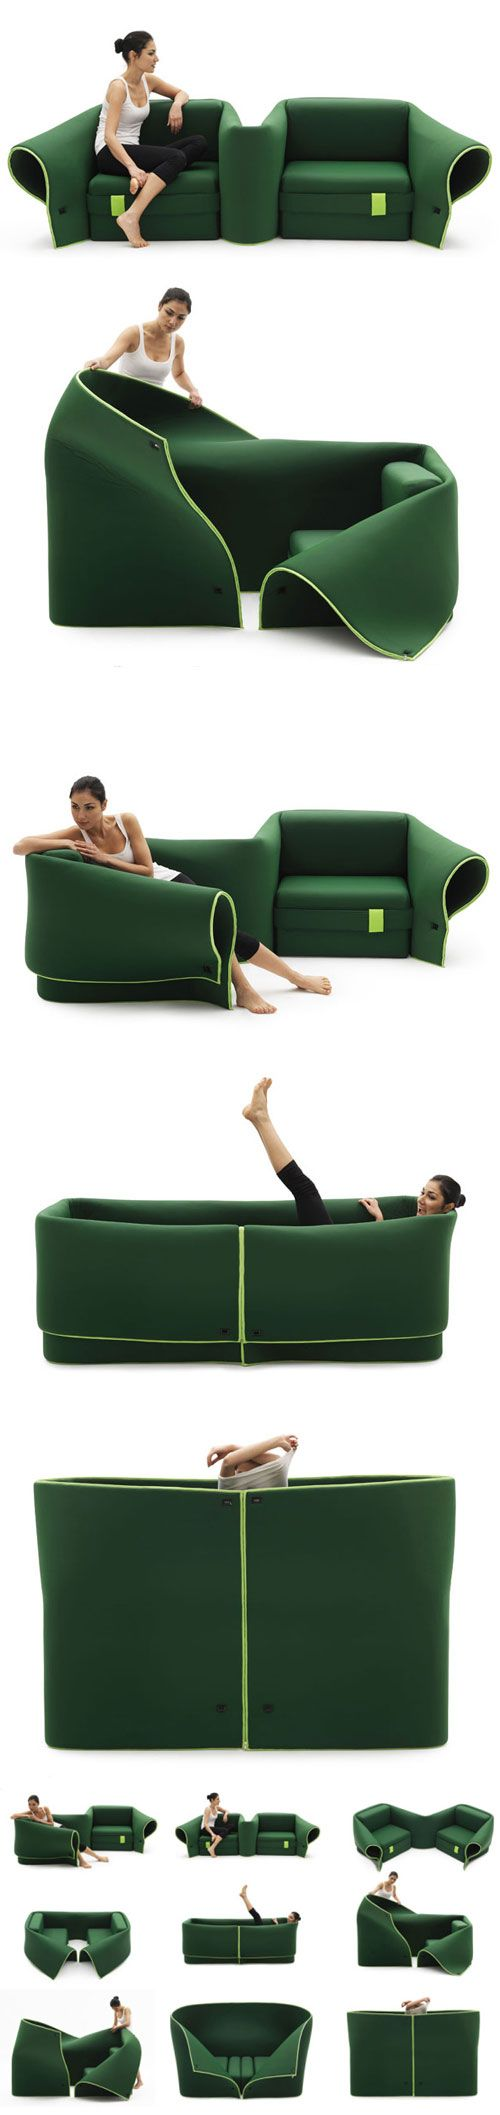 Convertible Couch! Yes please!